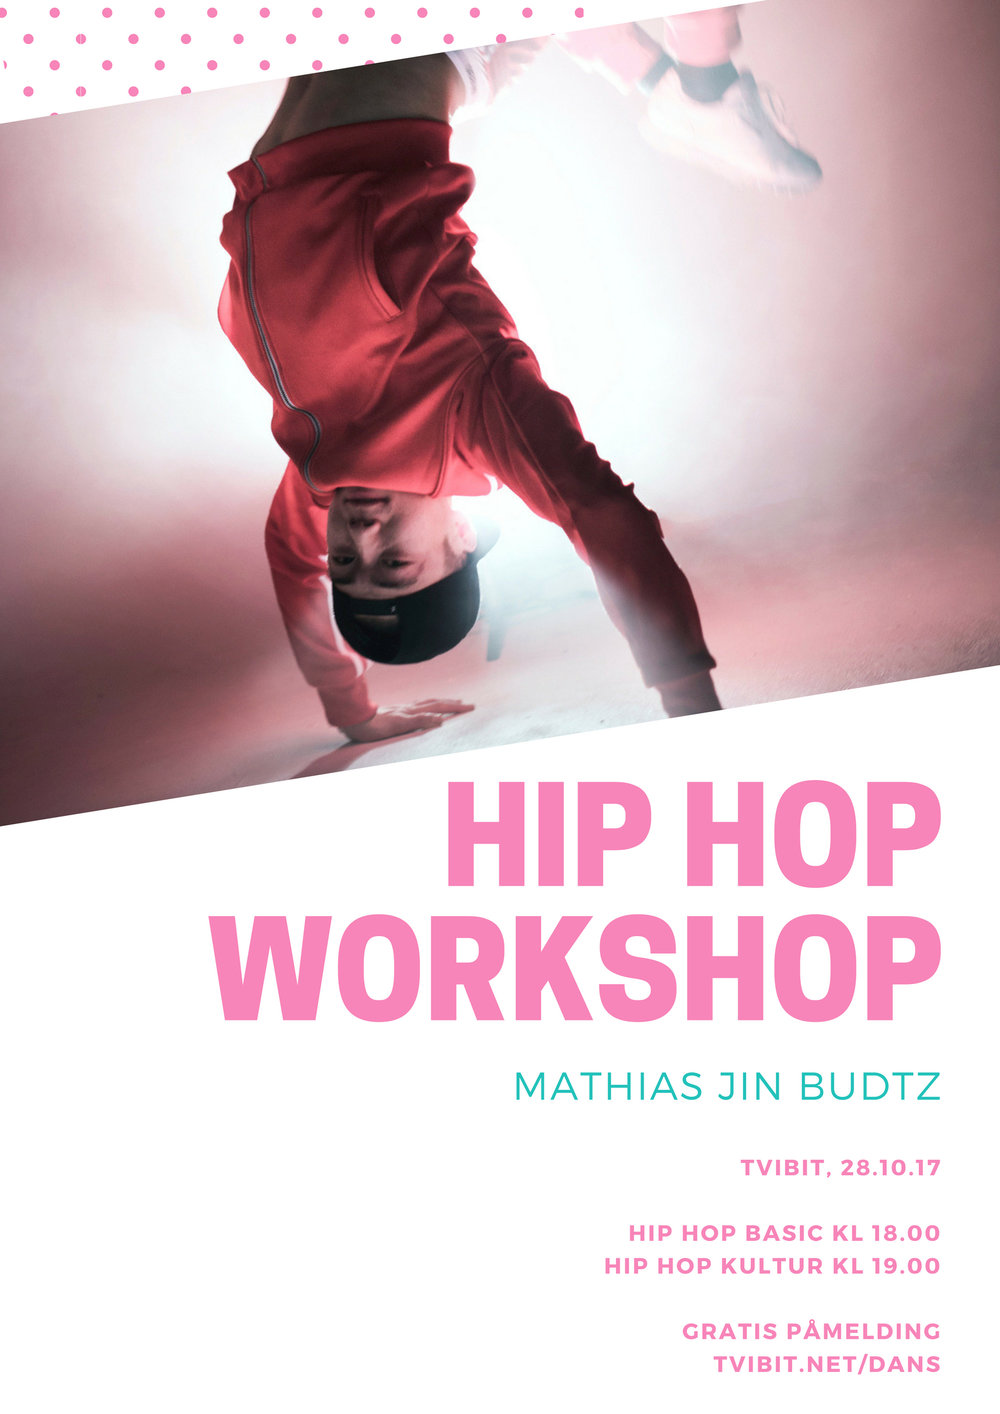 HIPHOP WORKSHOP plakat.jpg